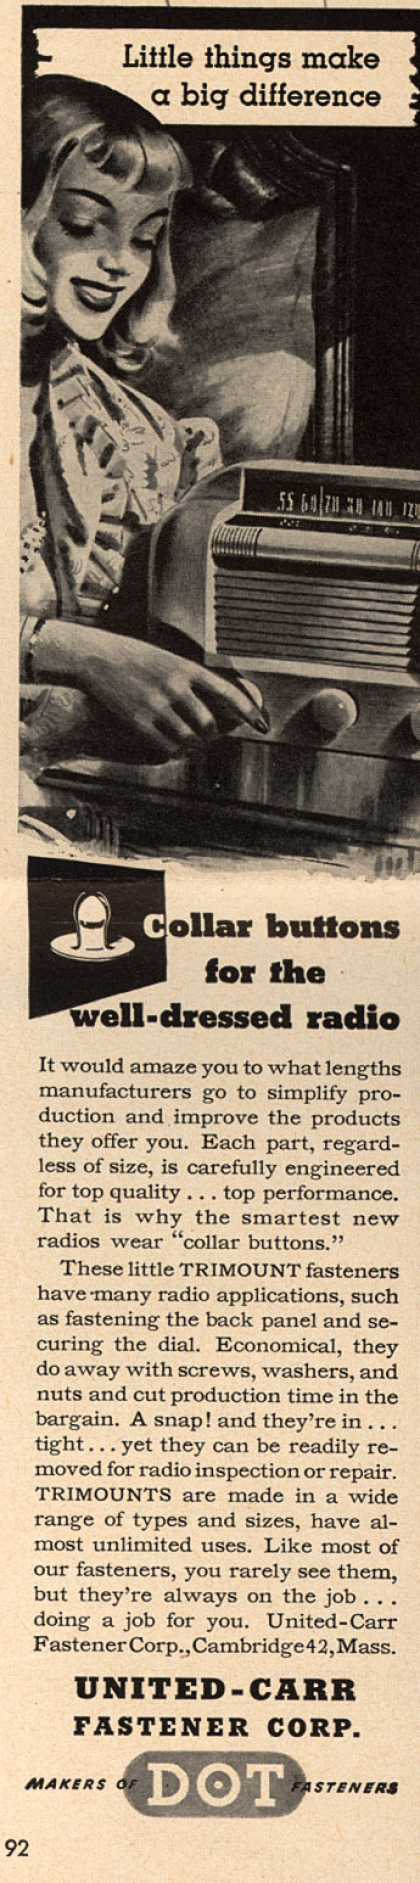 United-Carr Fastener Corporation's Trimount Fasteners – Little Things Make a Big Difference. Collar Buttons for the Well-Dressed Radio. (1949)